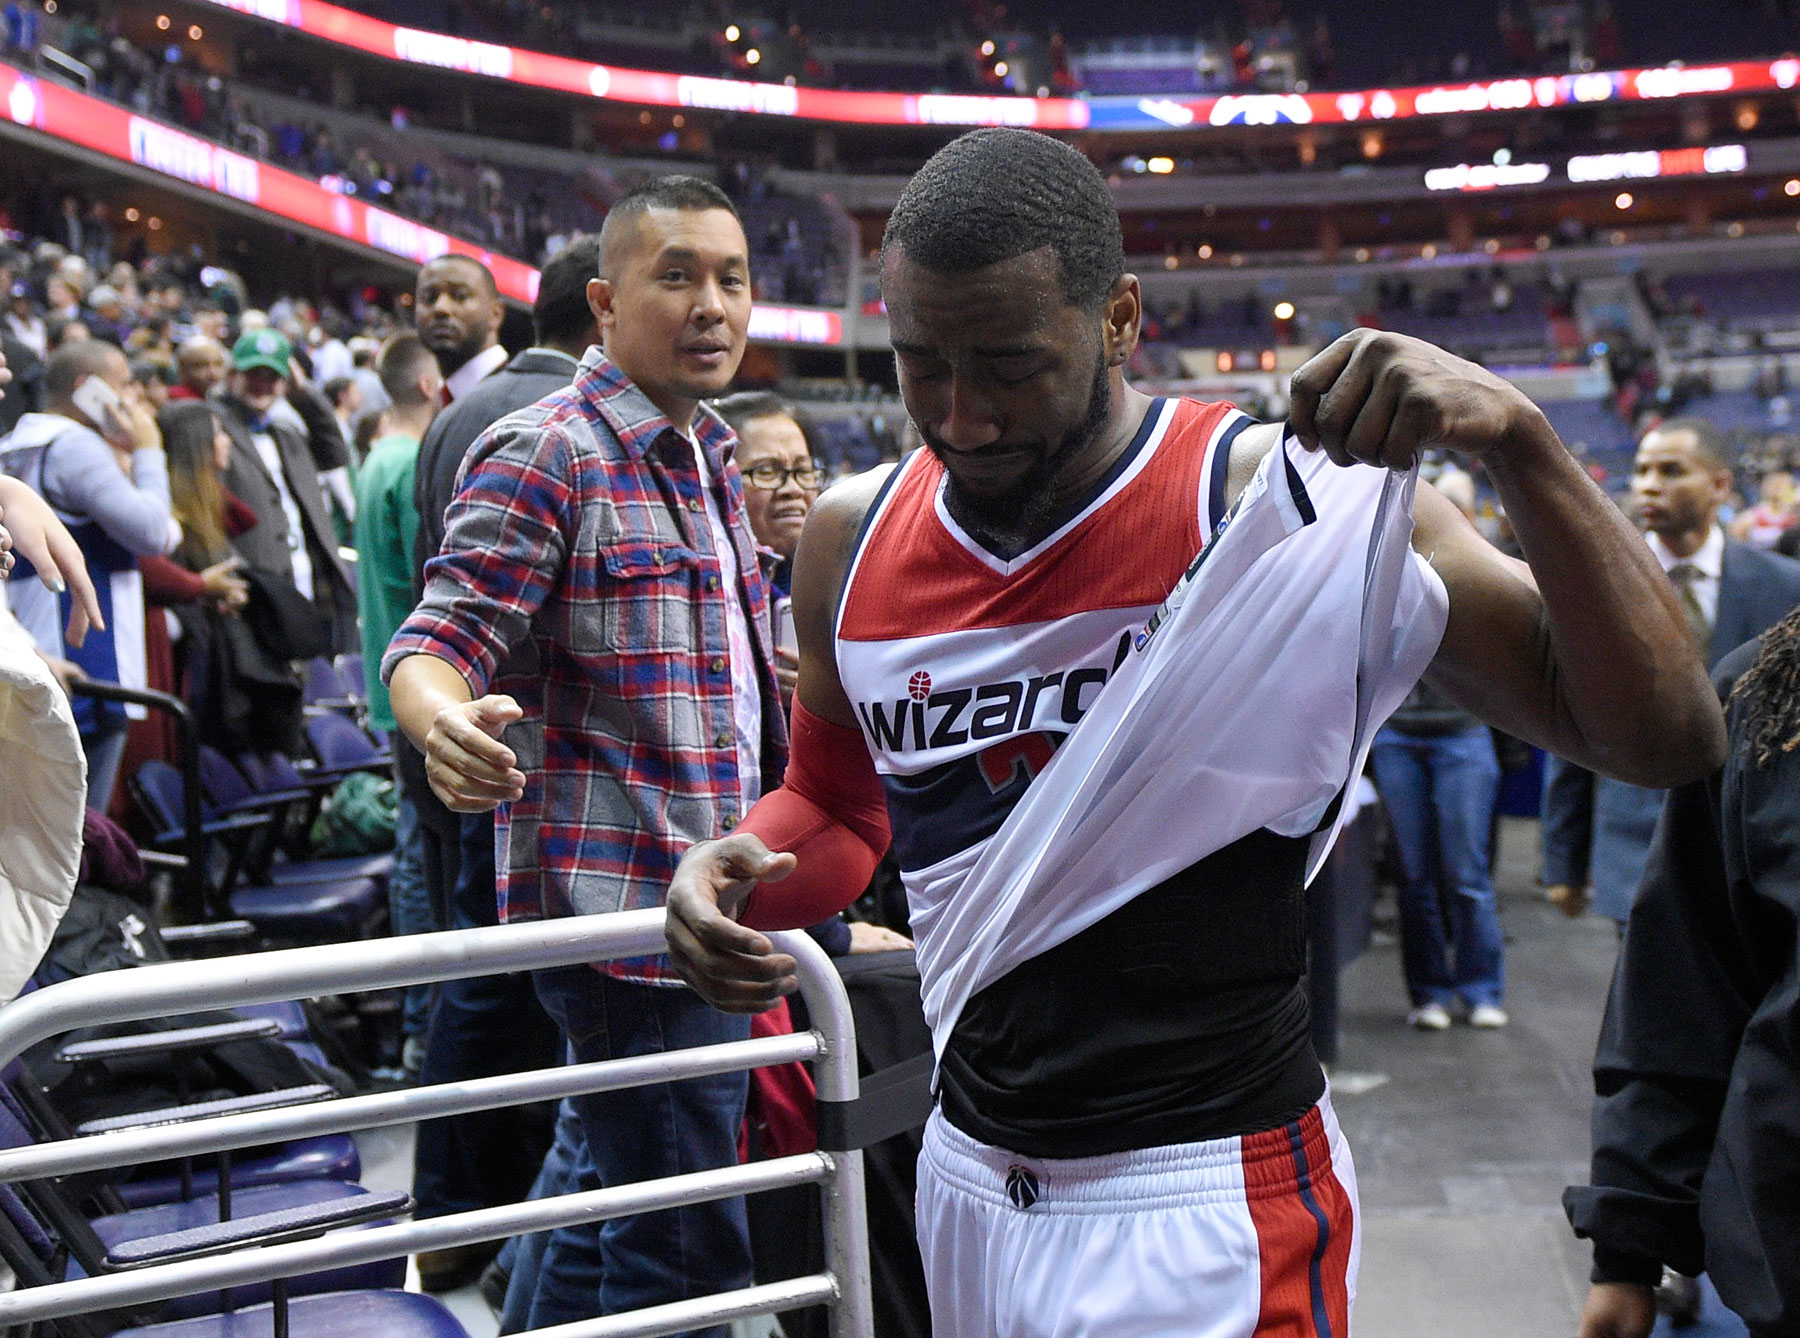 Wizards' Wall breaks down after game